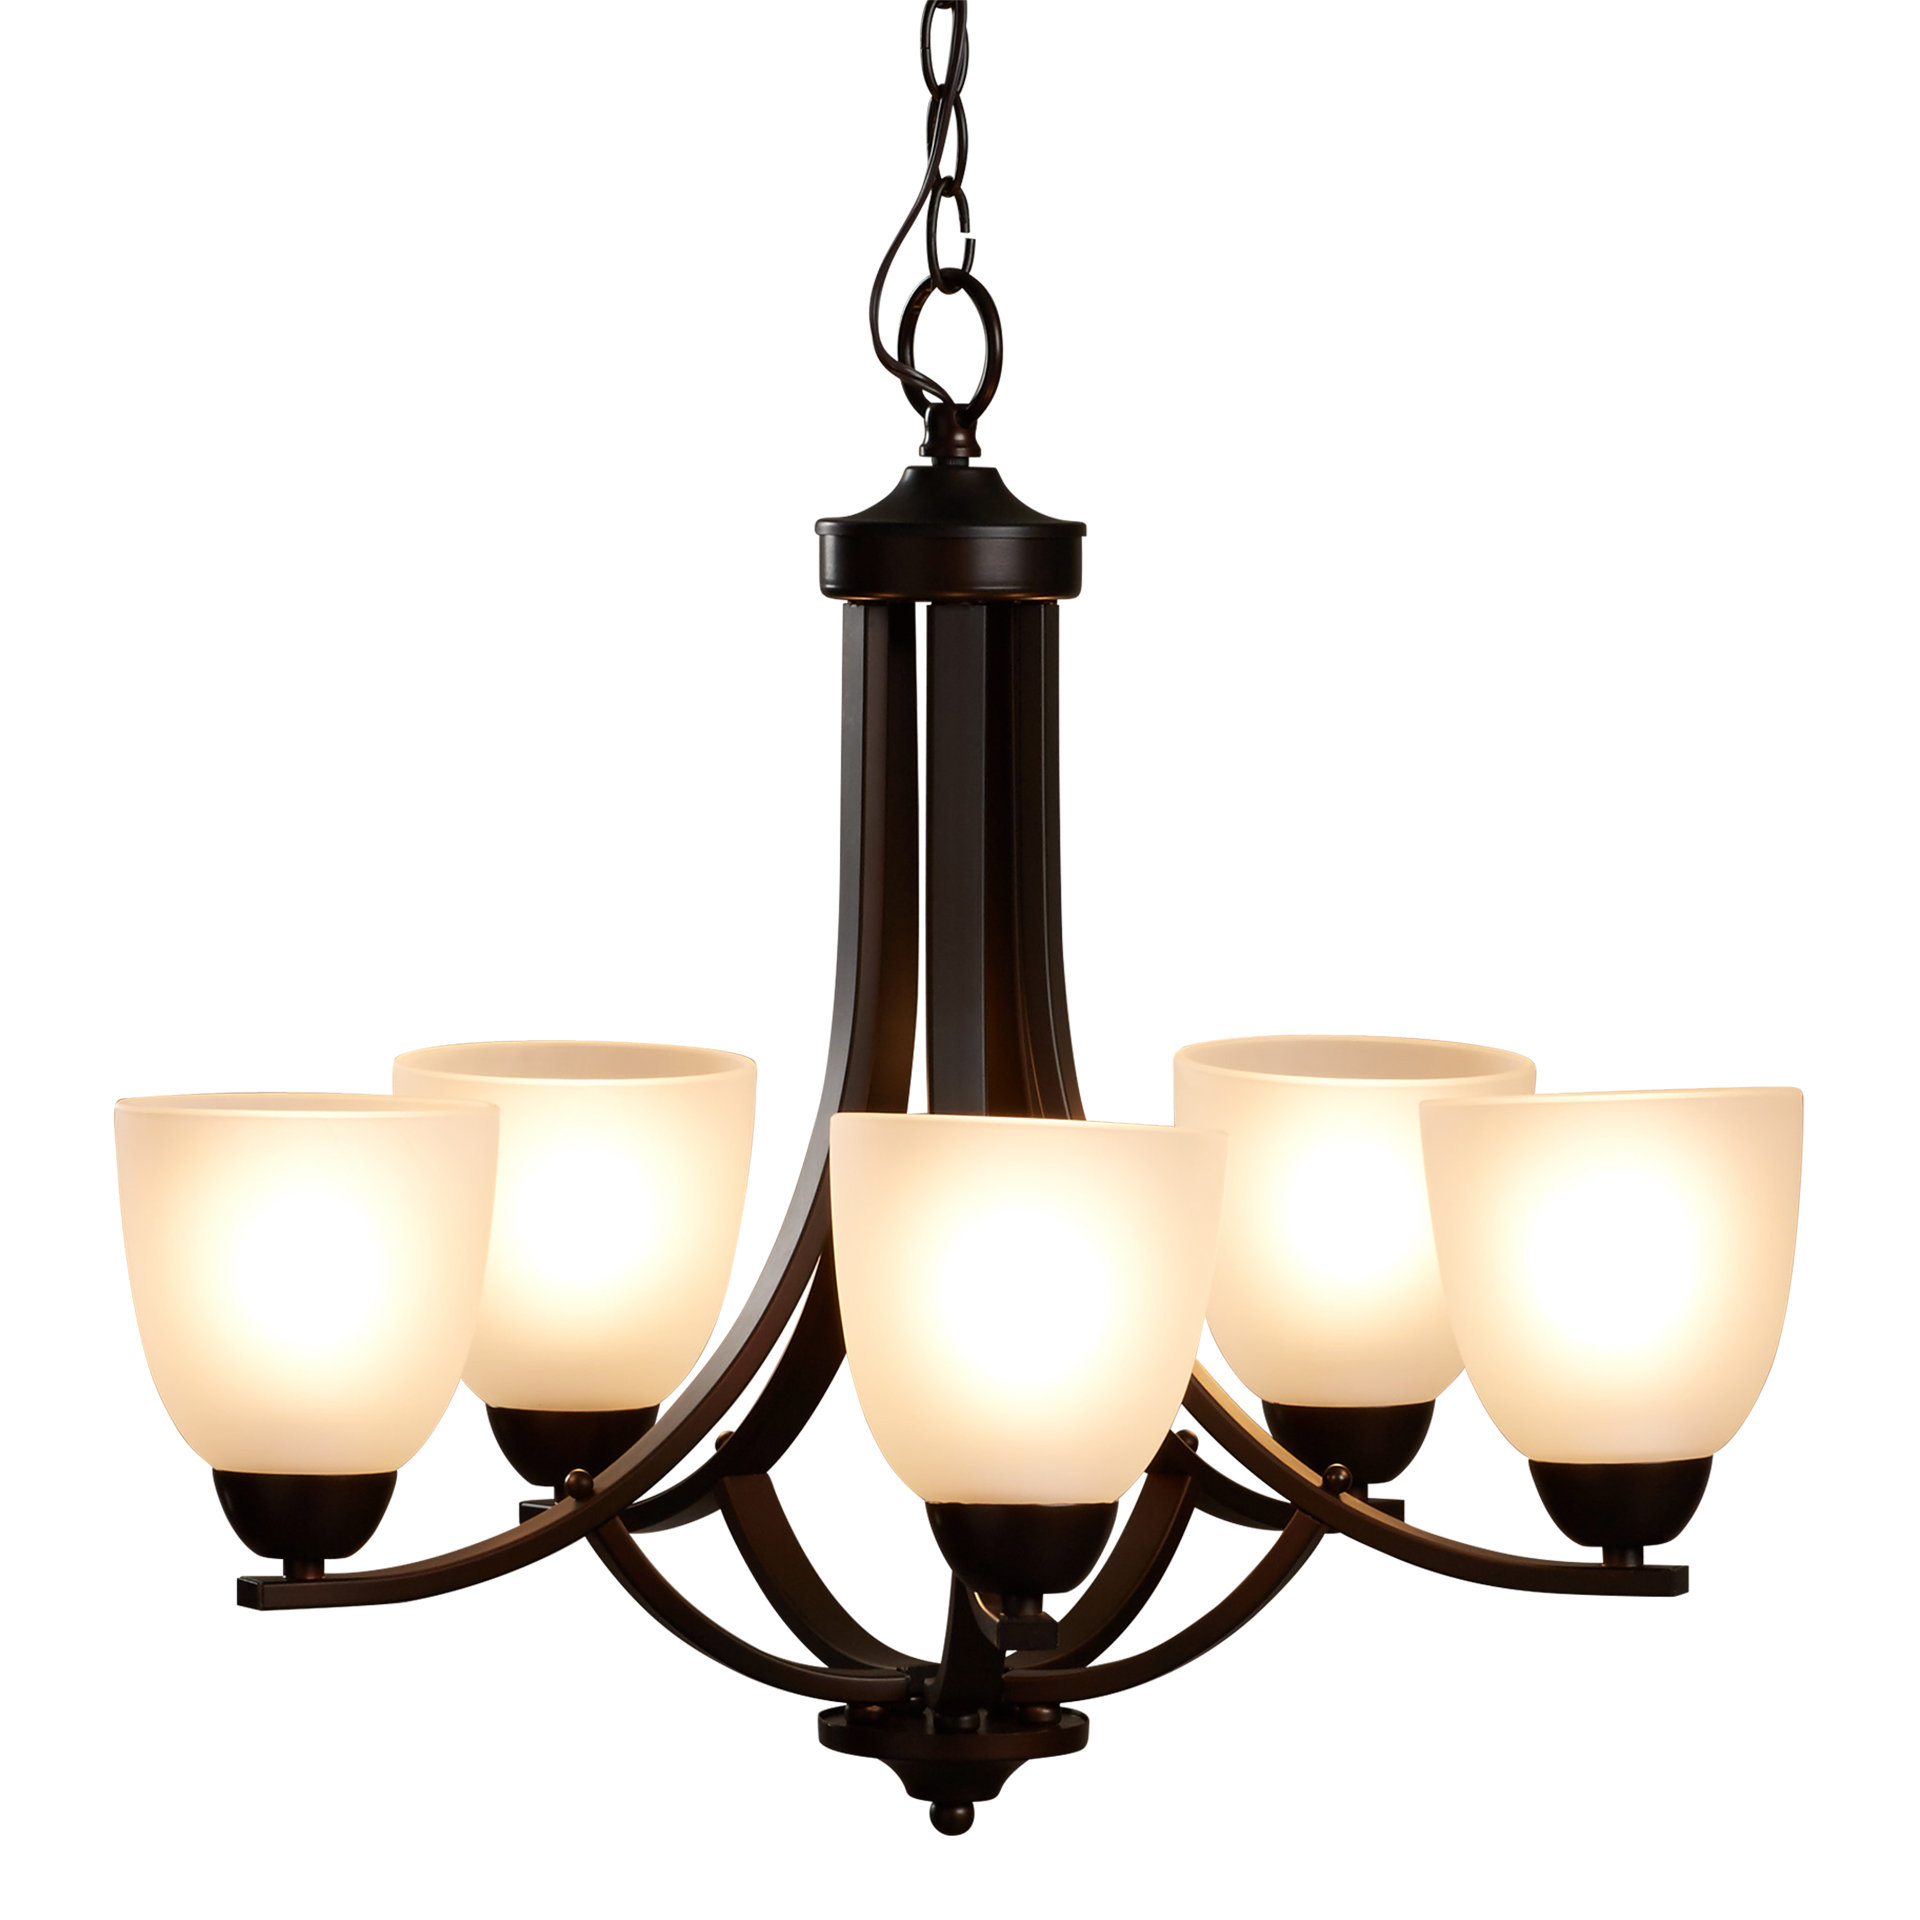 Hayden 5 Light Shaded Chandelier With Famous Suki 5 Light Shaded Chandeliers (View 3 of 25)